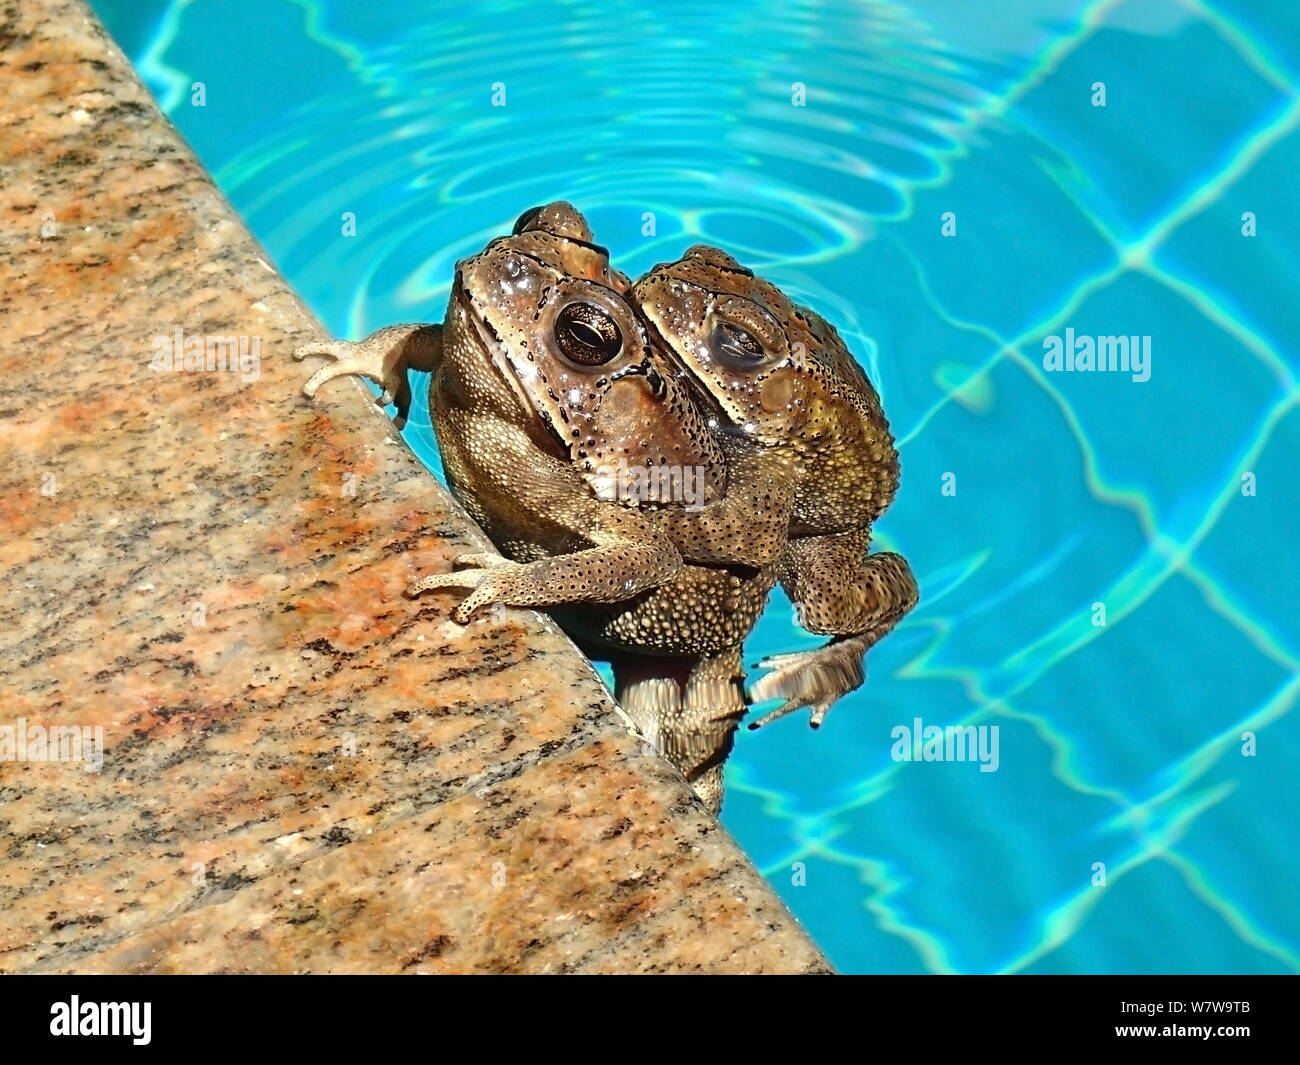 Common Toads Stock Photos & Common Toads Stock Images - Alamy